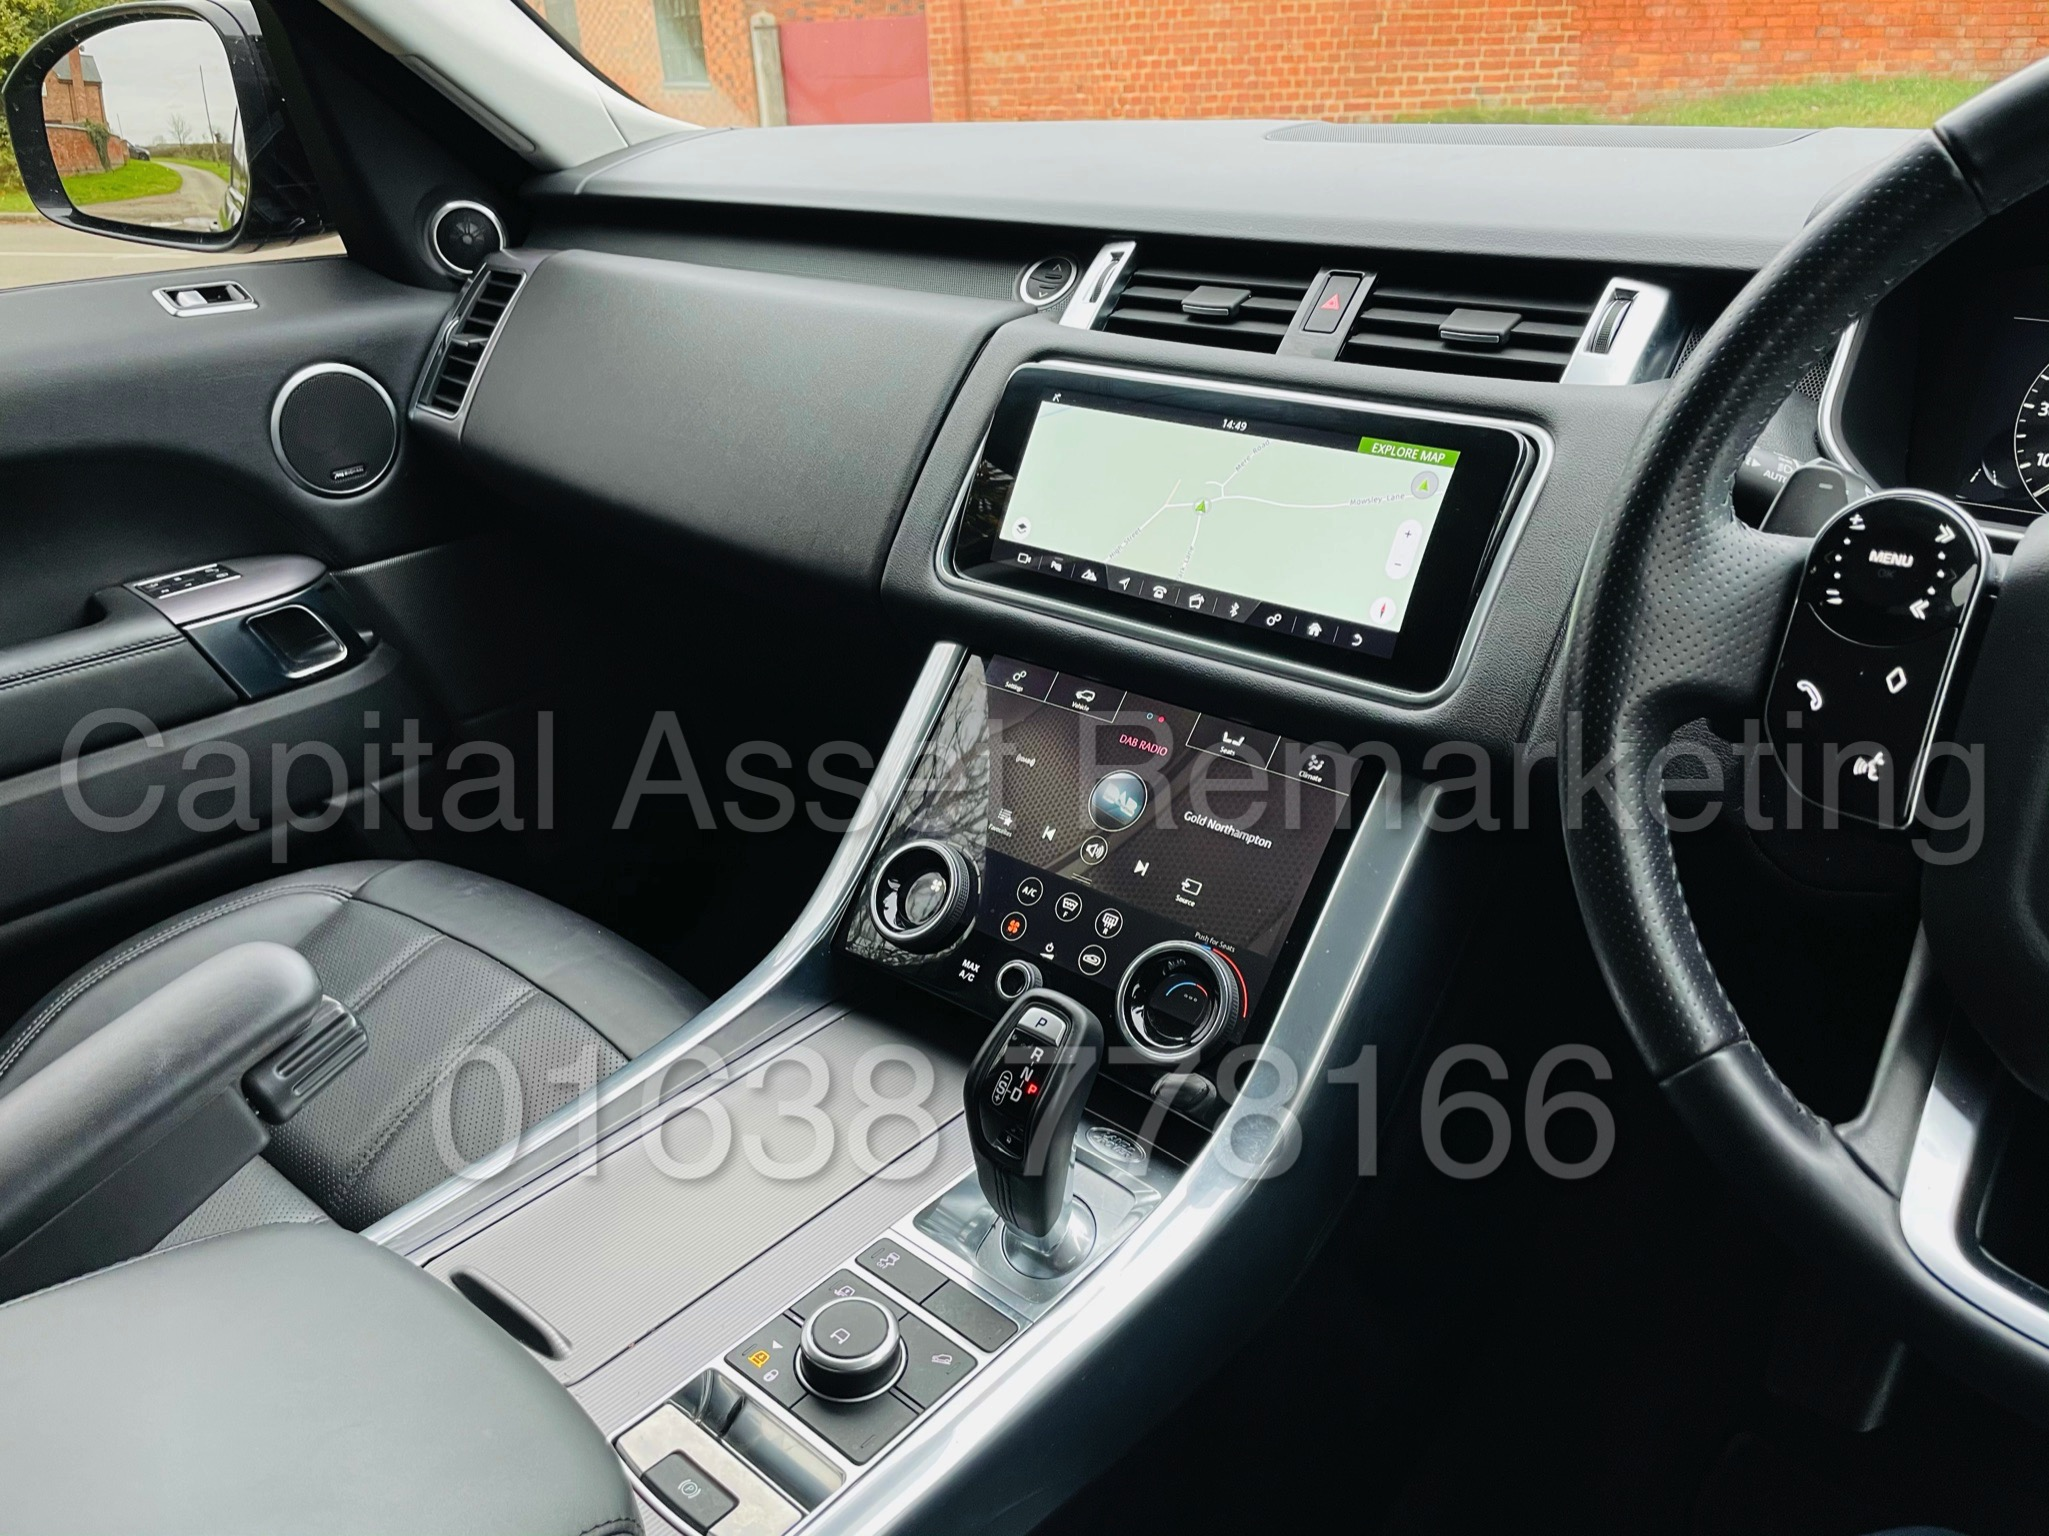 RANGE ROVER SPORT *HSE EDITION* SUV (2019 MODEL) '3.0 SDV6 - 306 BHP - 8 SPEED AUTO' *FULLY LOADED* - Image 47 of 56